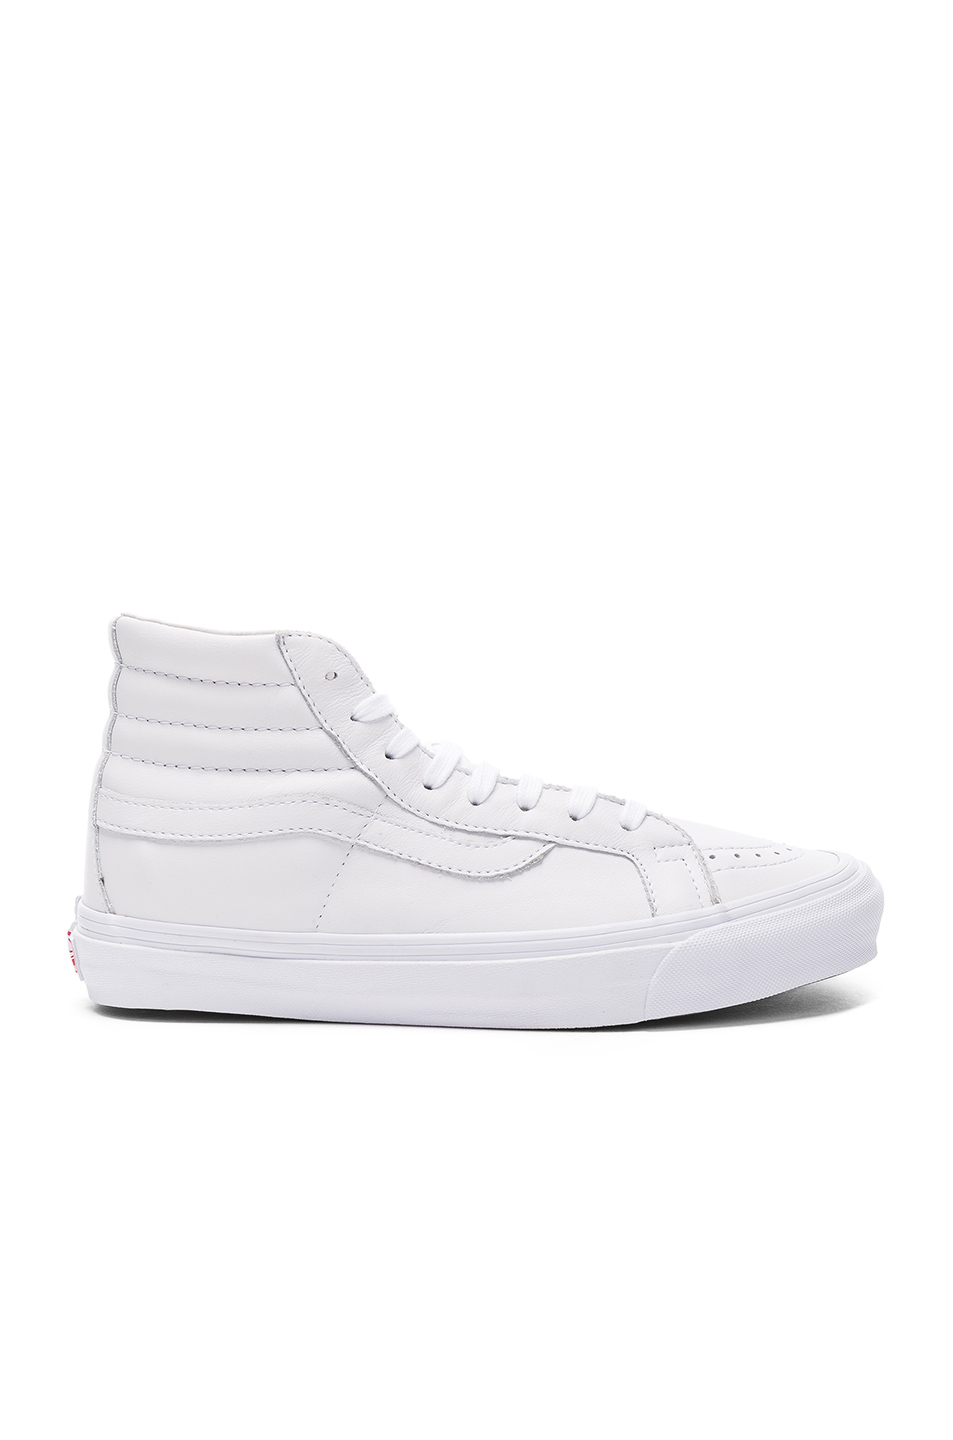 Sk8 Vault® Og Leather Top Hi High In Sneakers White Lx dCWxBore